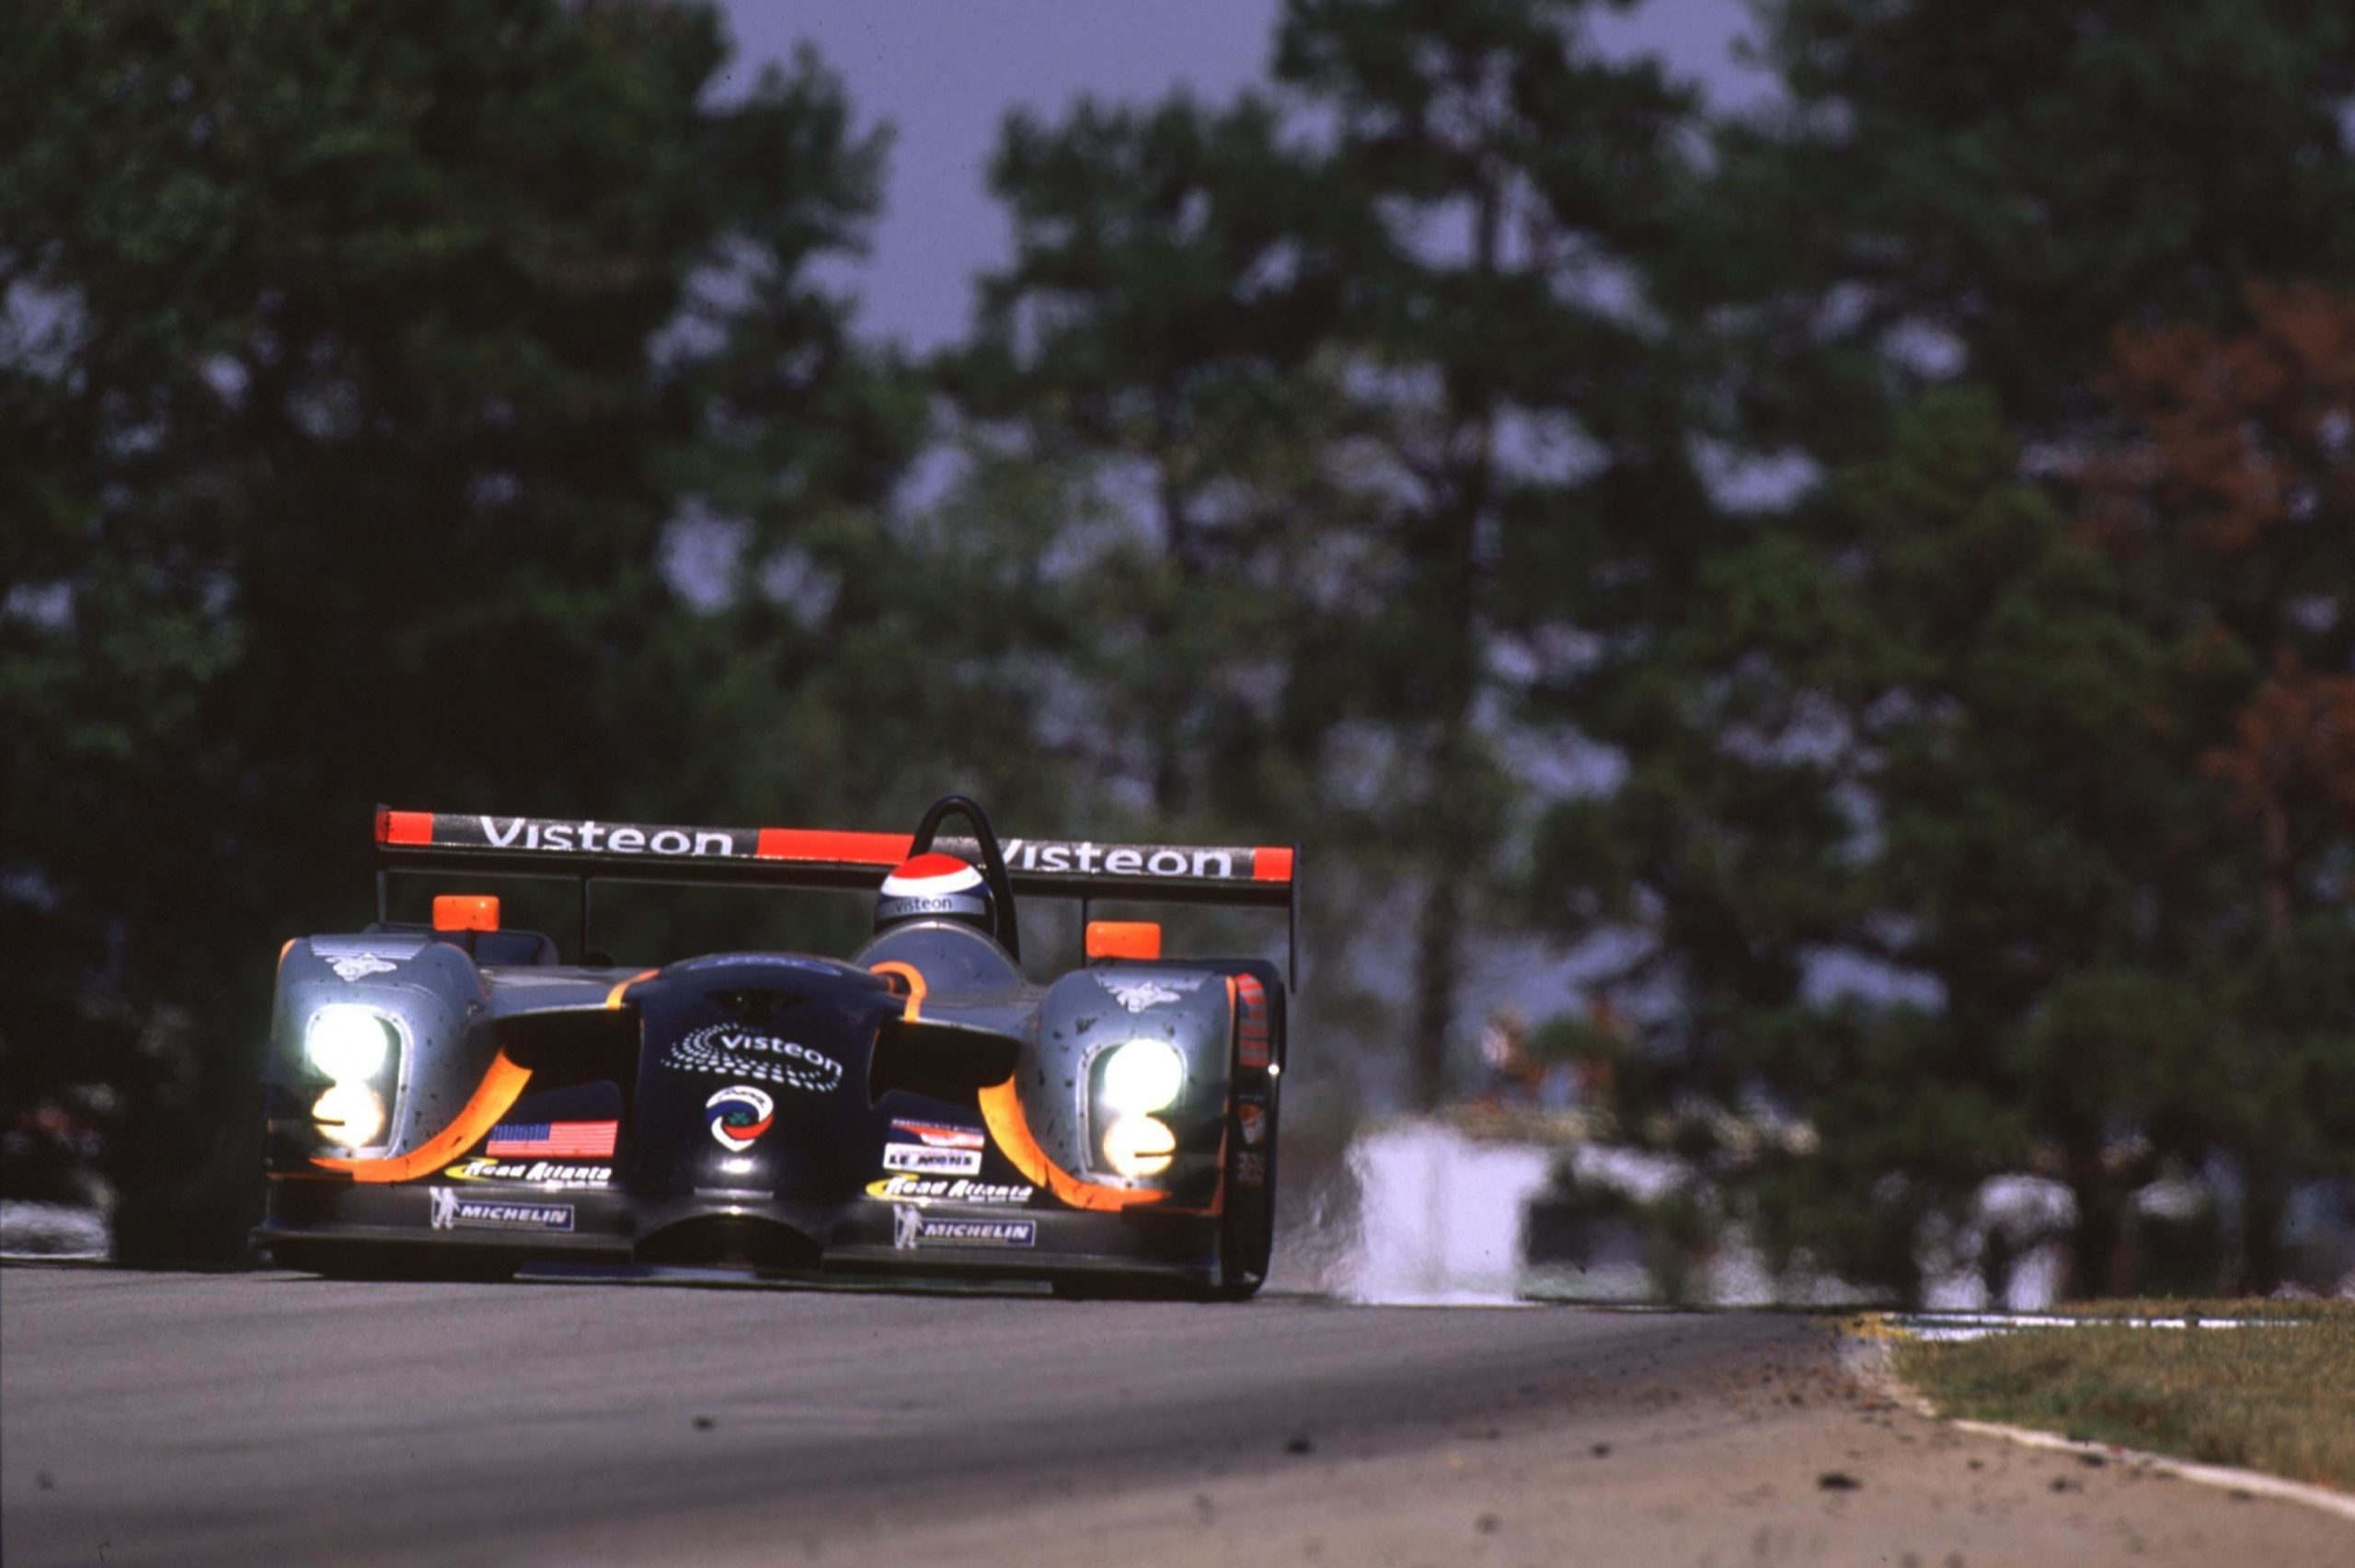 Petit Le Mans victory in 1999 was one of the high-points in Panoz's racing history